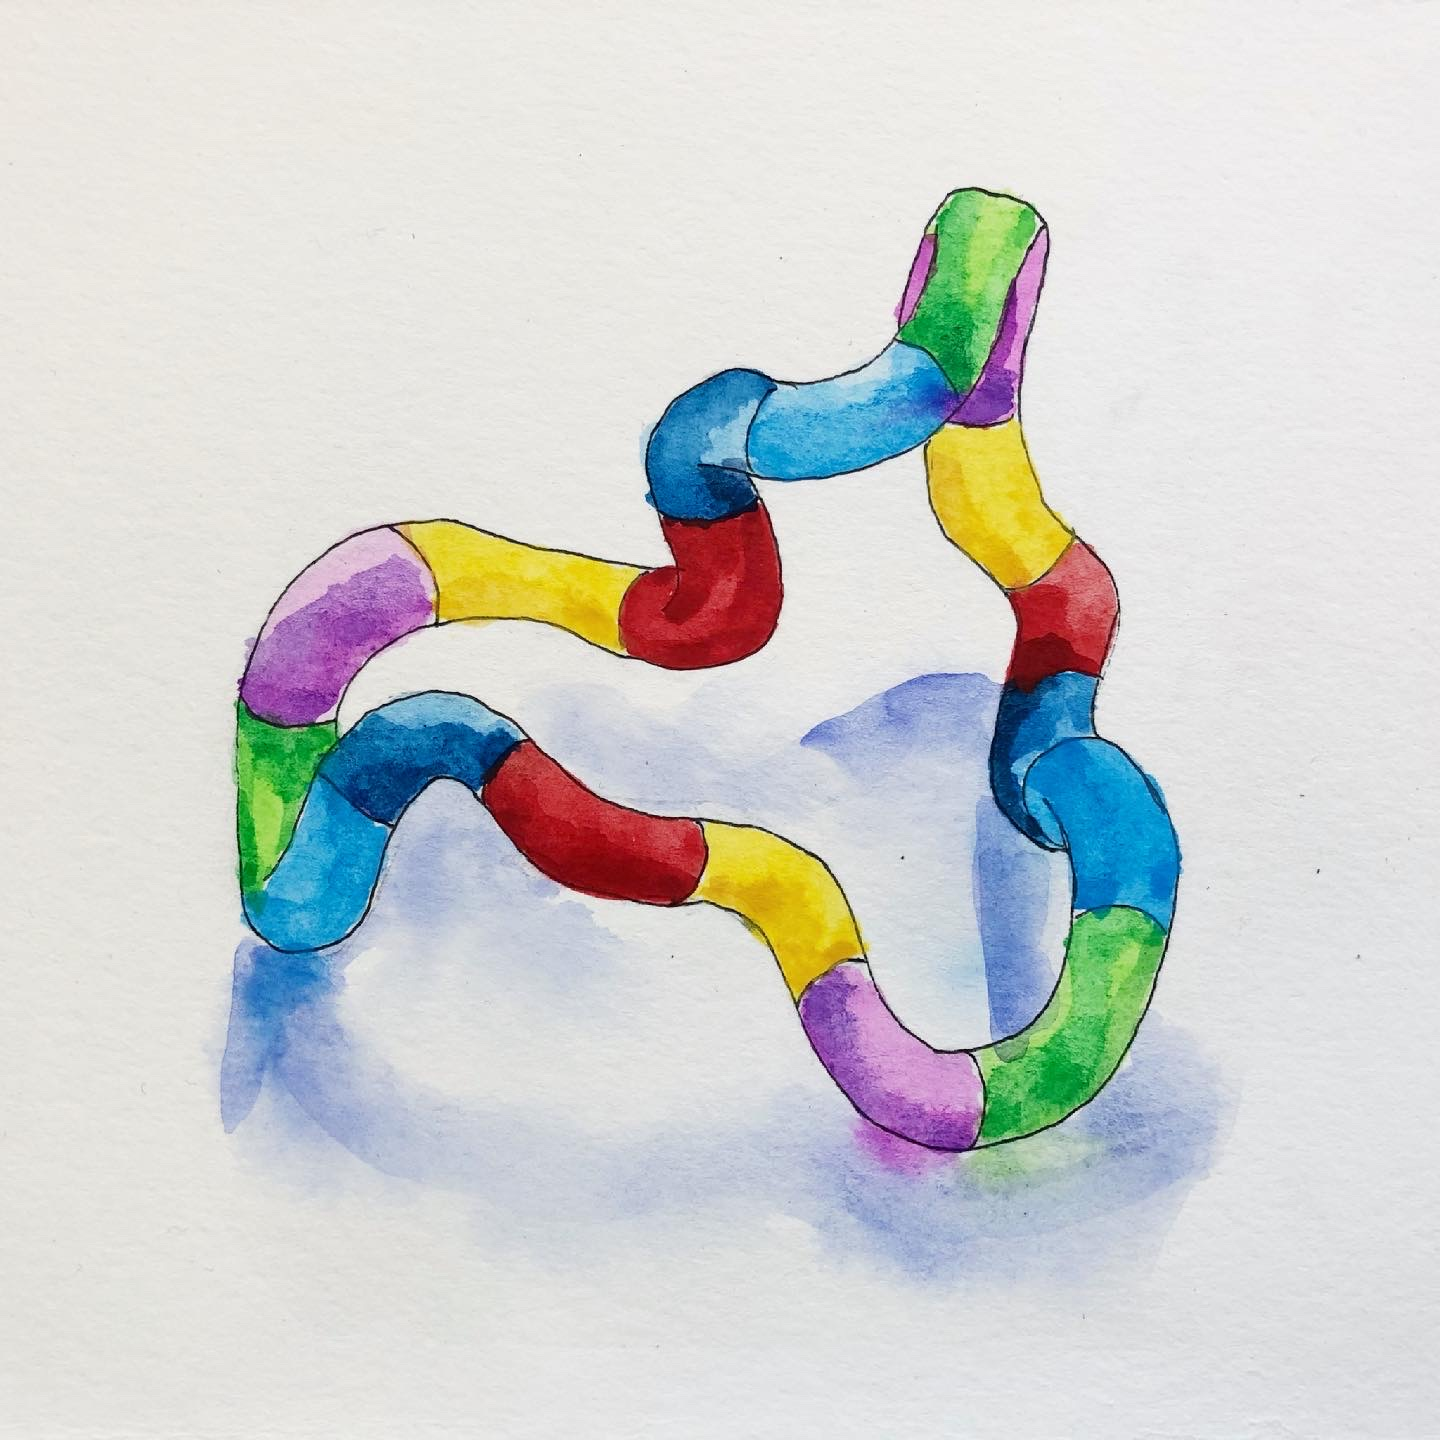 A watercolor painting I did of my favorite stim toy - my tangle. It has rainbow colors, like the autism spectrum!